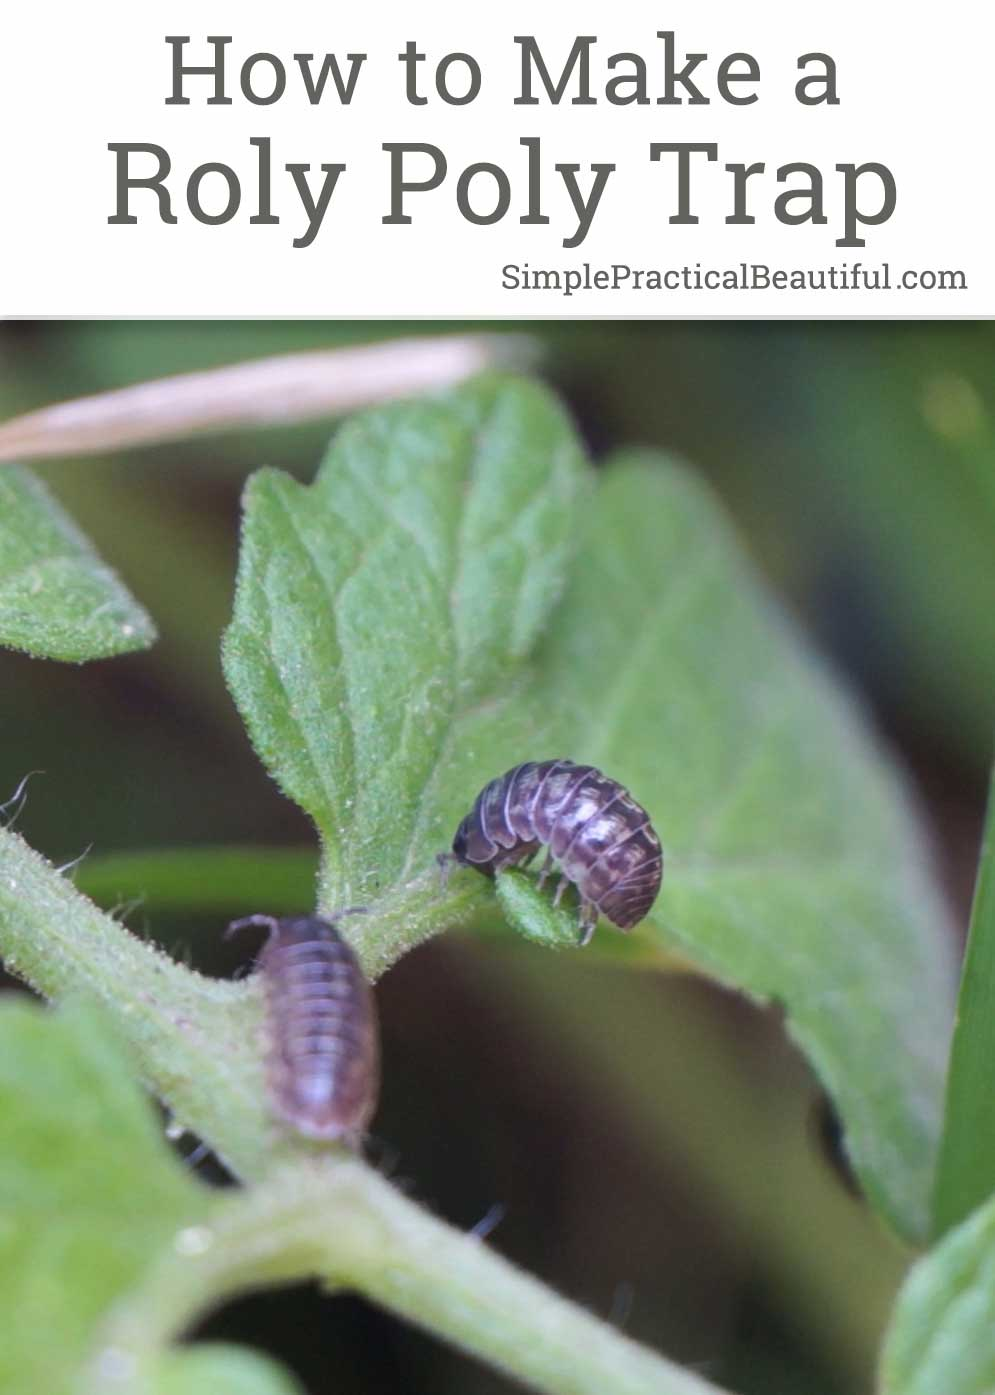 Stop roly polies from eating your vegetable garden with a simple trap made out of a potato | Pill bugs, or doodle bugs, are decomposers but will eat tender, young fruit and vegetable plants | How-to gardening tutorial